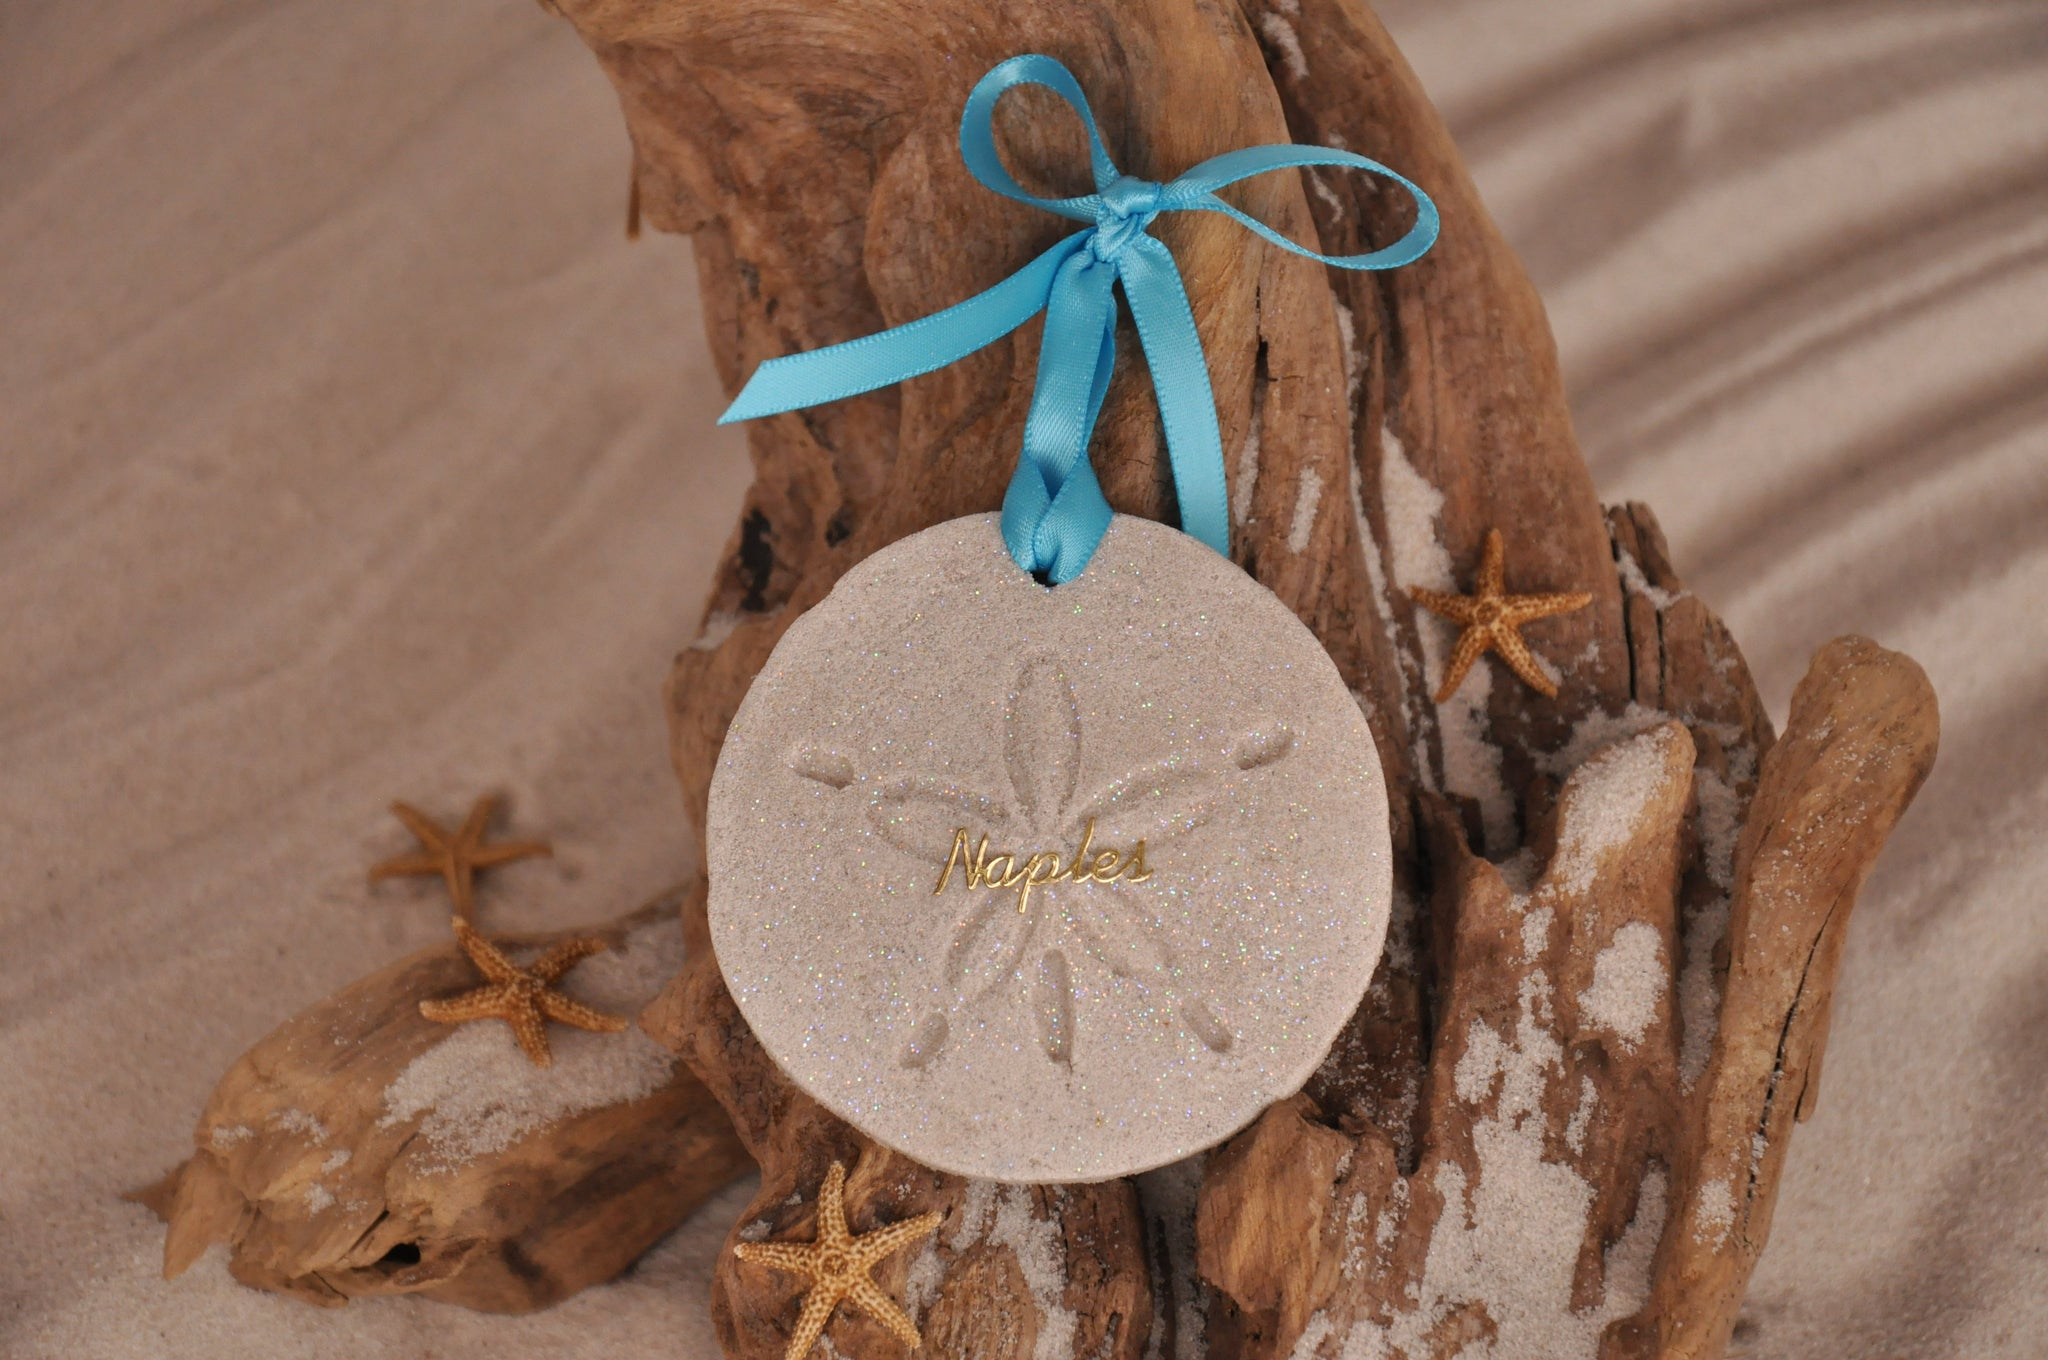 SAND ORNAMENT, CHRISTMAS TREE ORNAMENT, TROPICAL CHRISTMAS DECORATIONS, COASTAL ORNAMENT, SAND ORNAMENT, TROPICAL ORNAMENT, ARENOPHILE, CHRISTMAS ORNAMENT, NAPLES